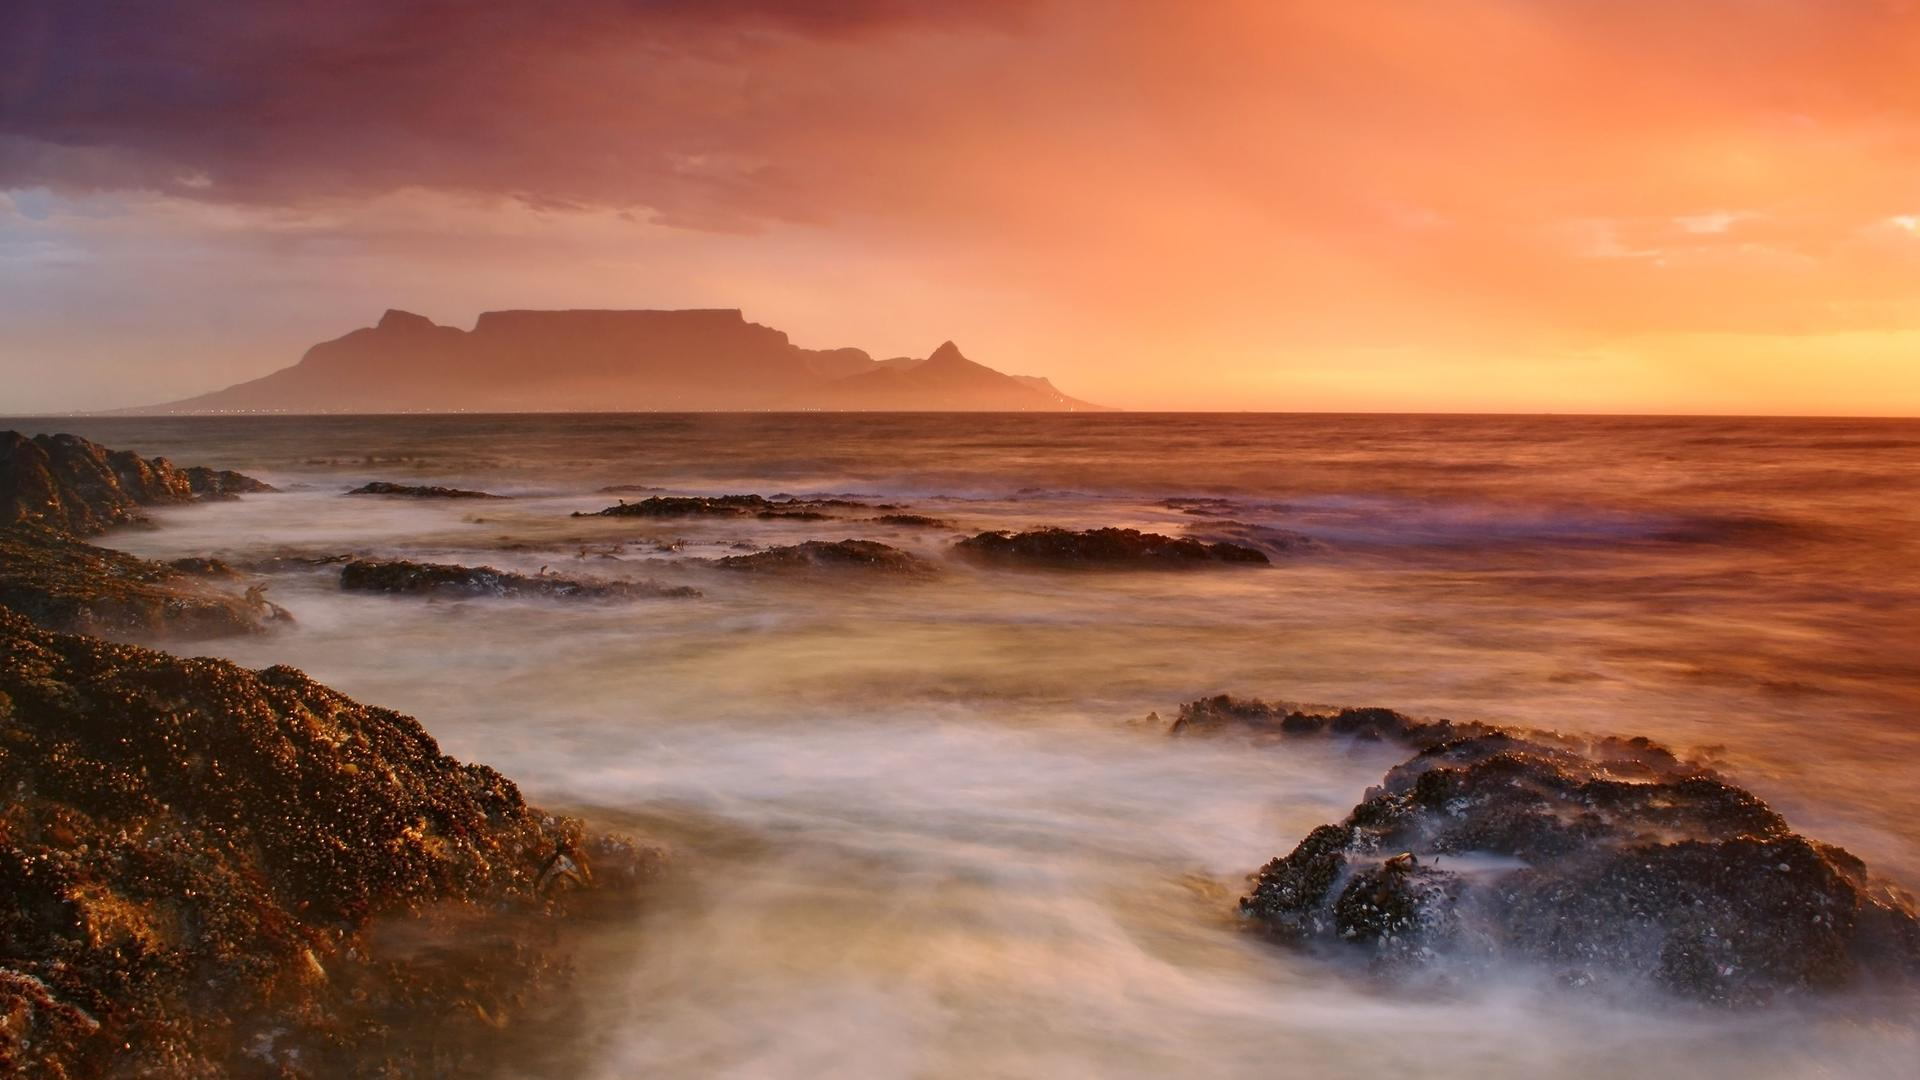 South africa odyssey blue train - Cape town to port elizabeth itinerary ...